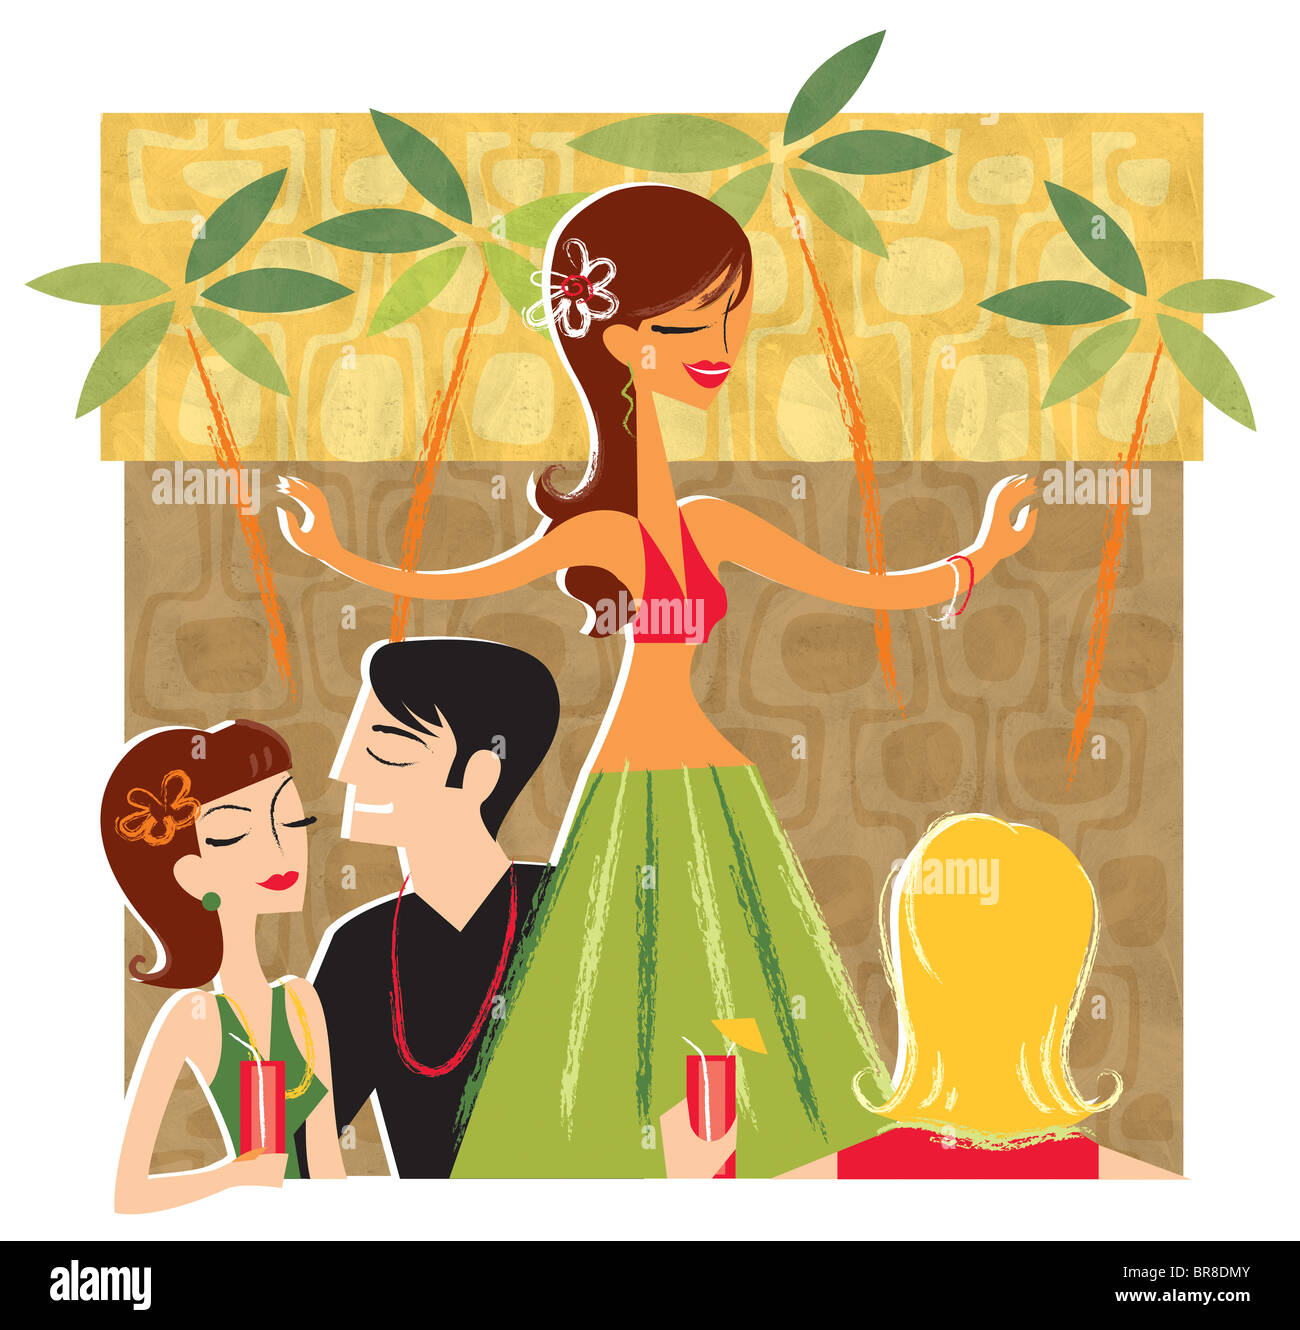 An illustration of a group of people enjoying a hula dancer at a Luau - Stock Image